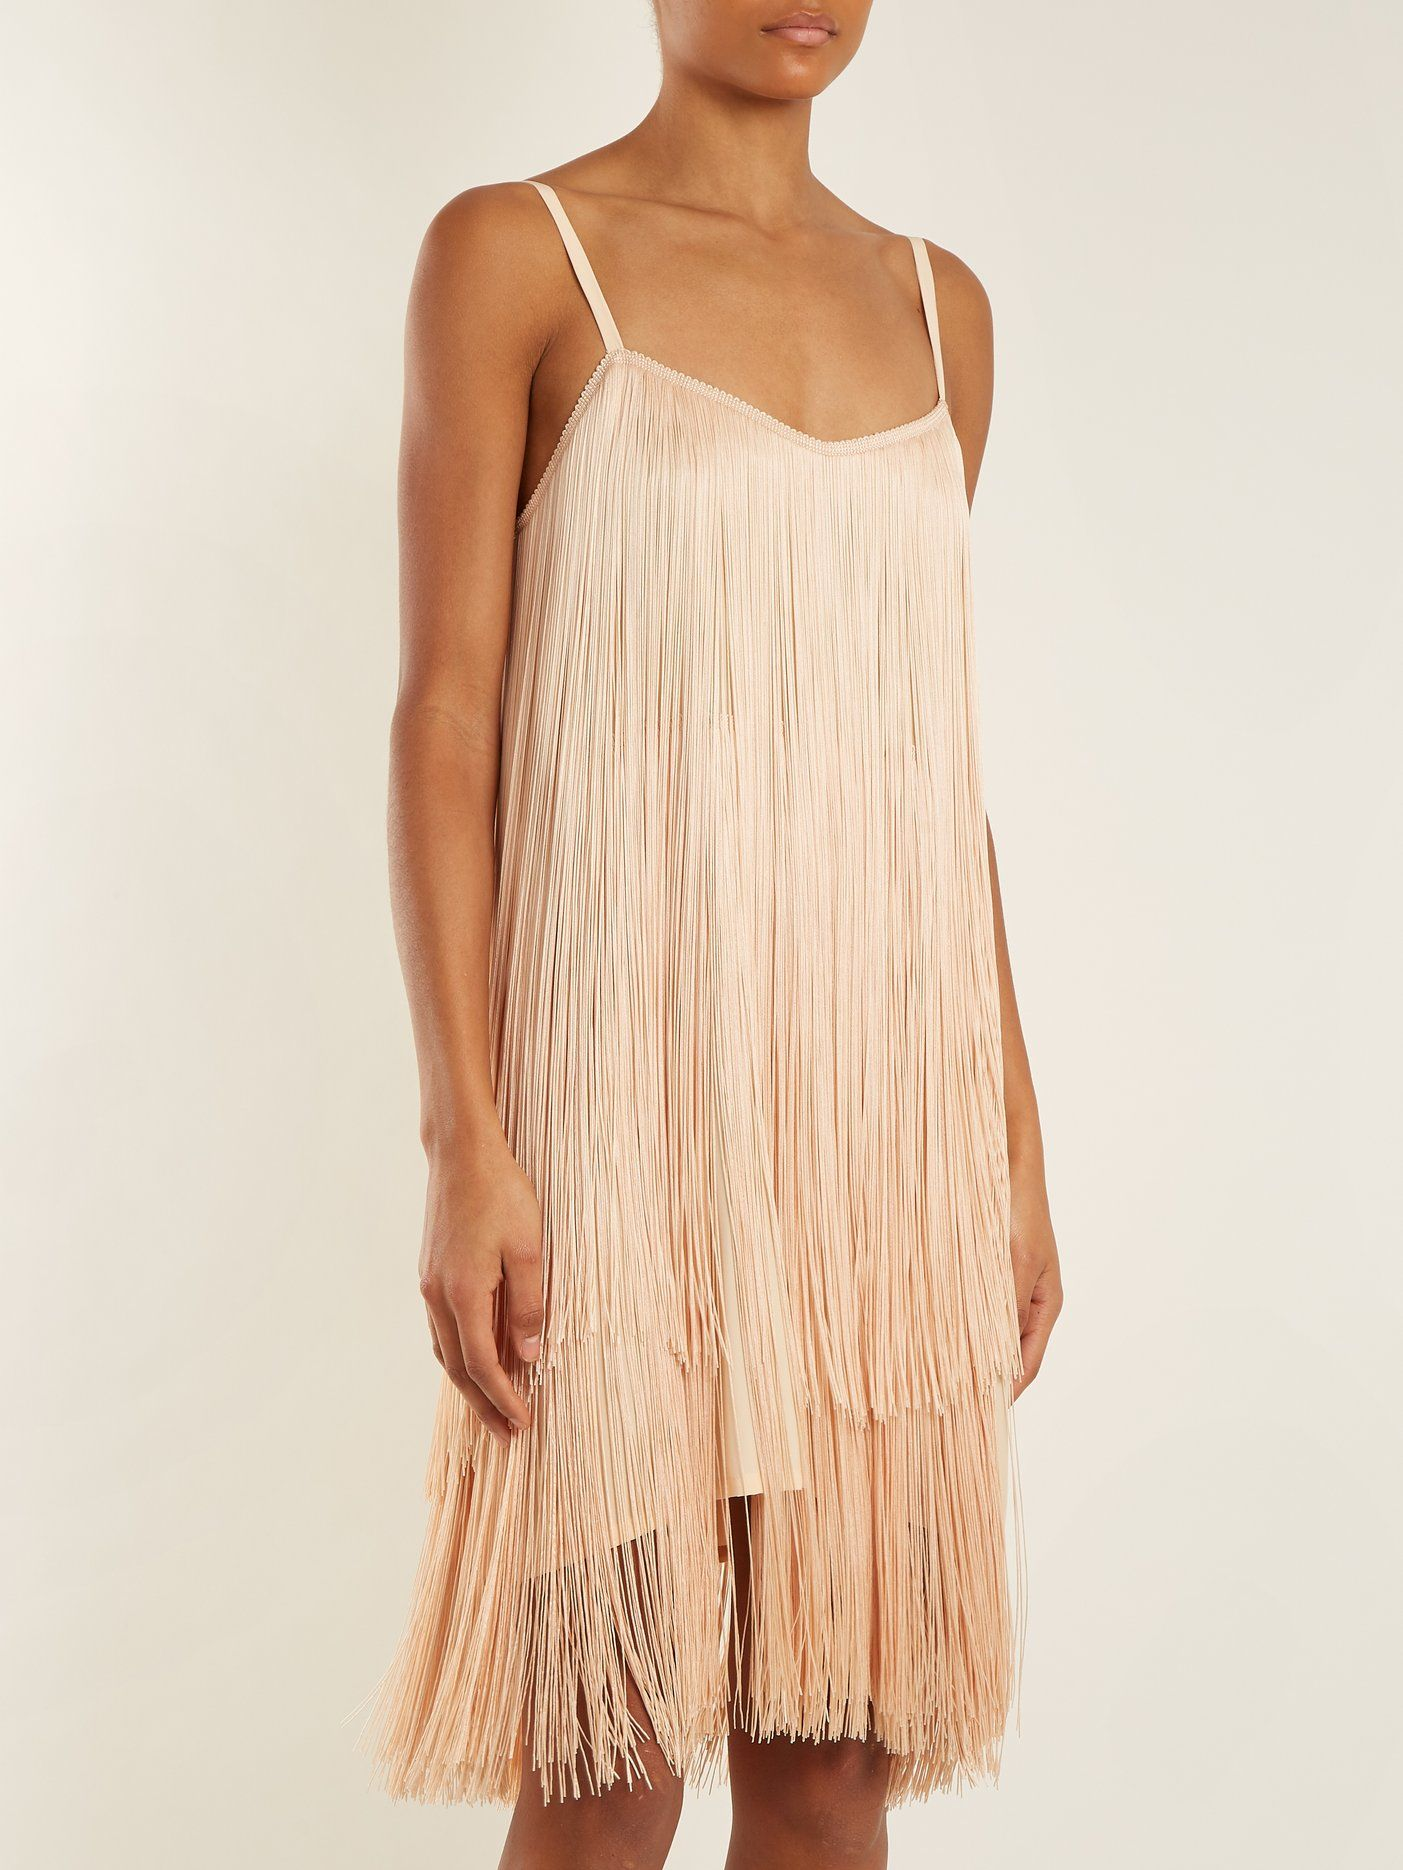 Long-fringe slip dress Raey Cheap Sale Footlocker Pictures Free Shipping Real For Nice Cheap Online YgDgf